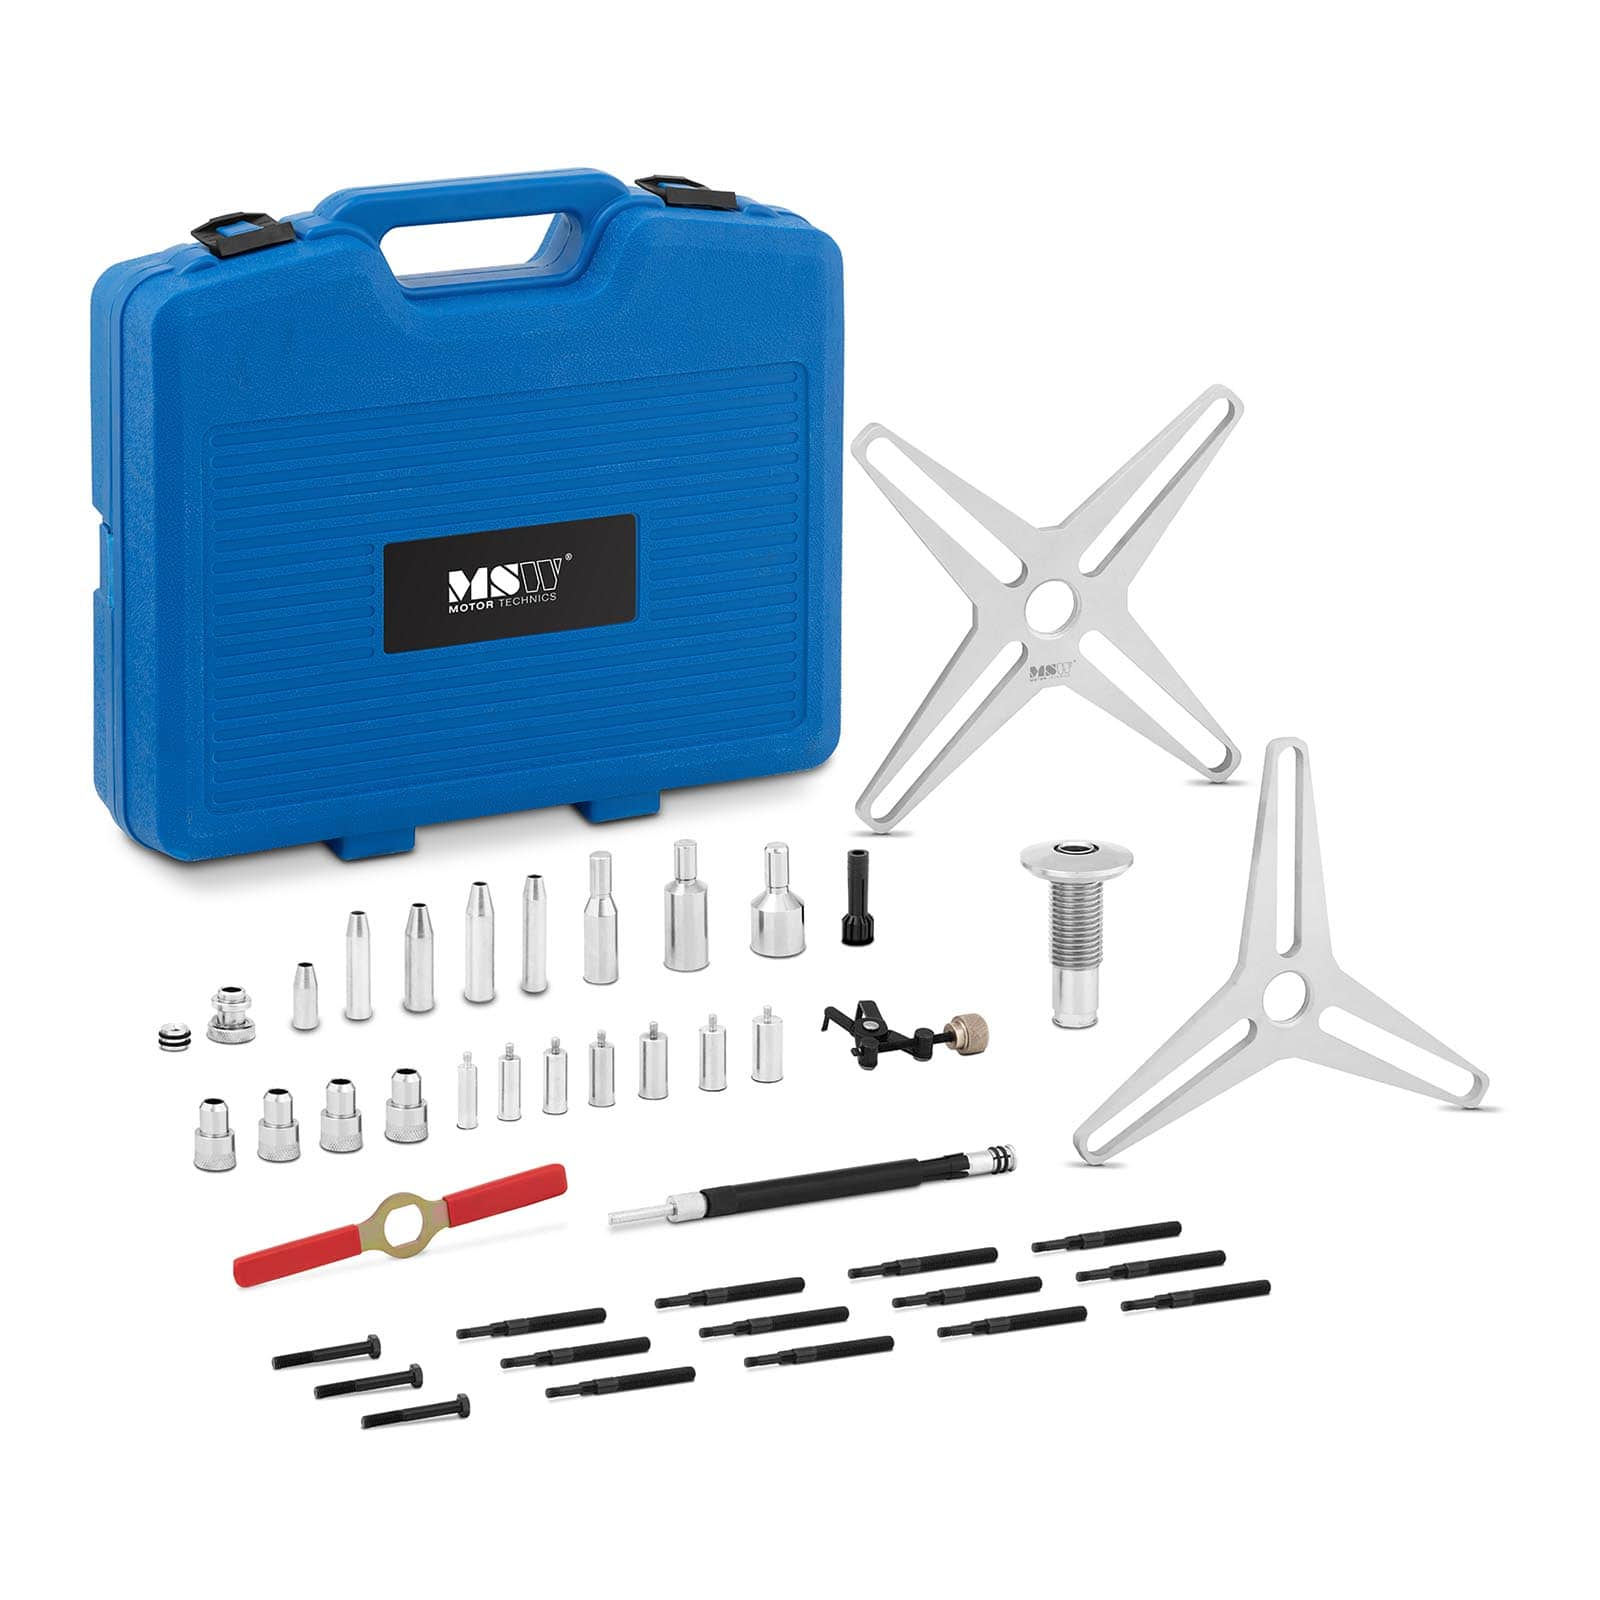 Outils d'embrayage